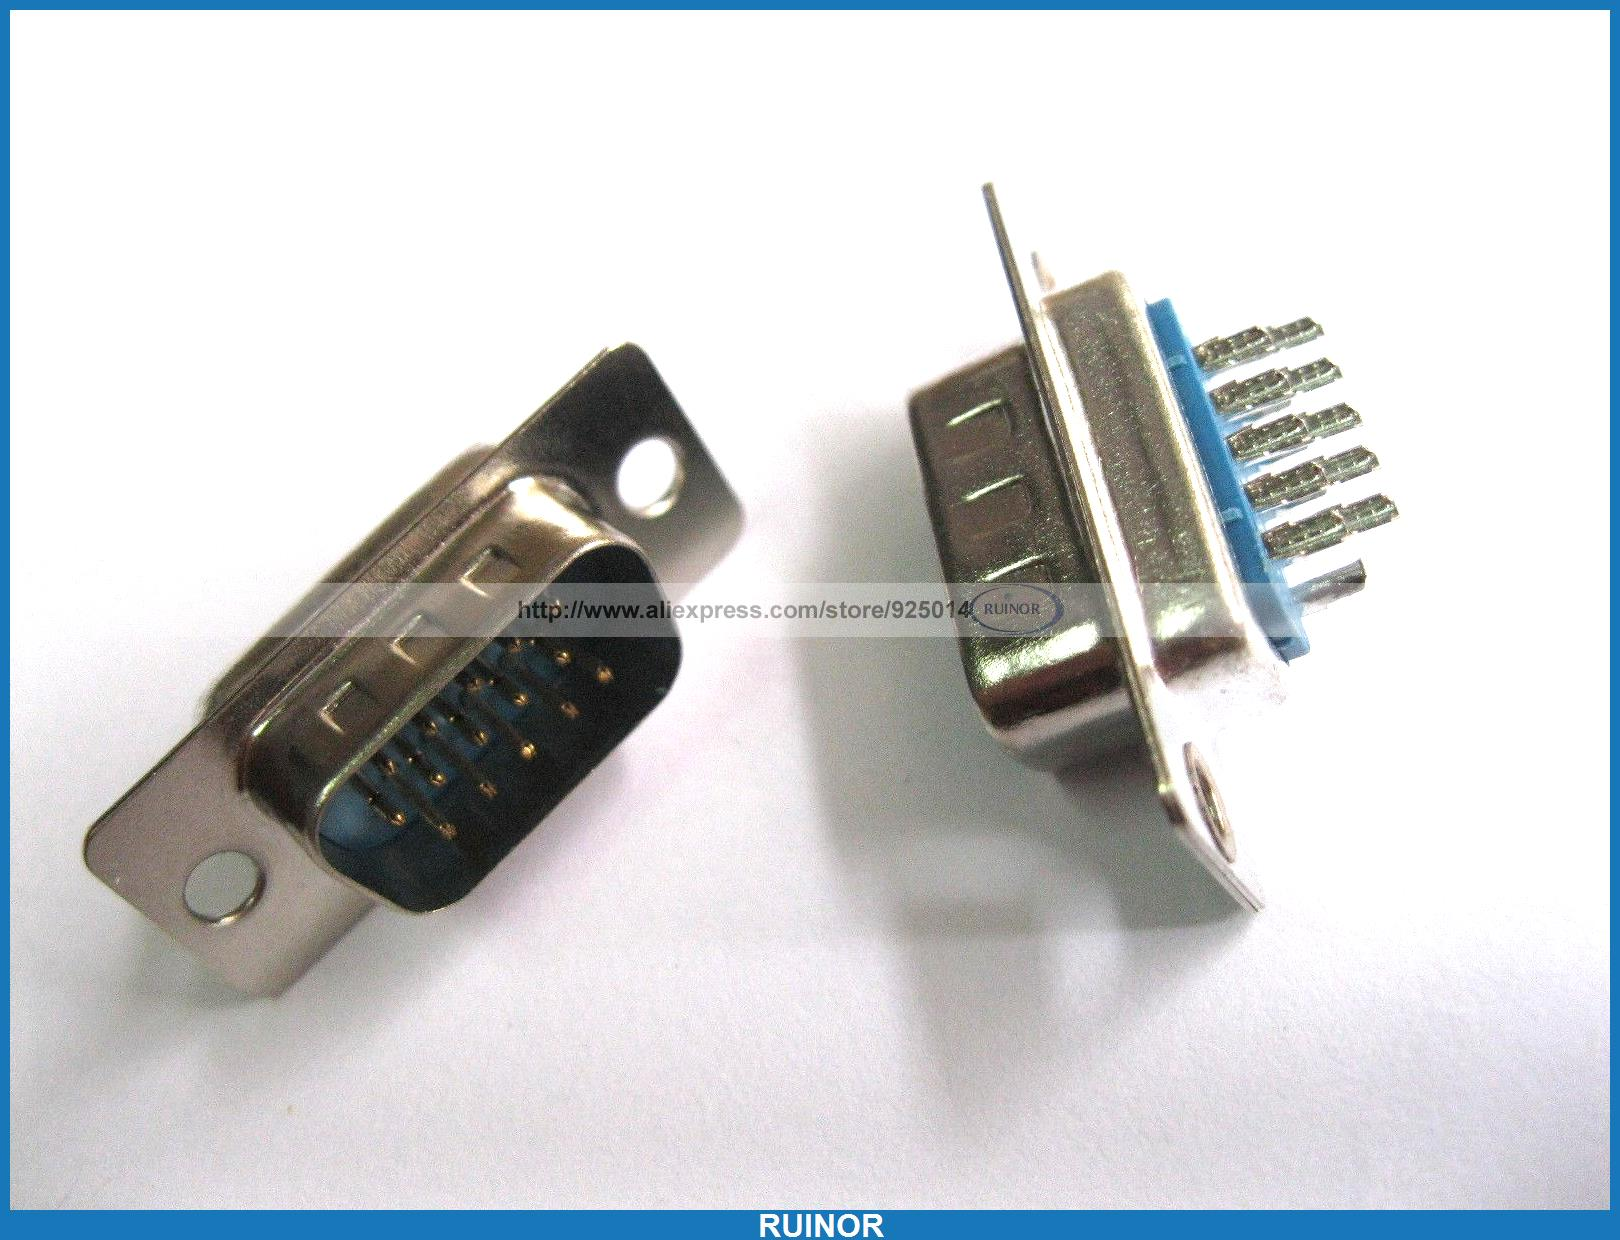 120 Pcs D Sub 15 Pin Male Solder Connector for PC Use 10 pcs d sub vga db 15 pin male solder type connector socket 2 rows db15f male